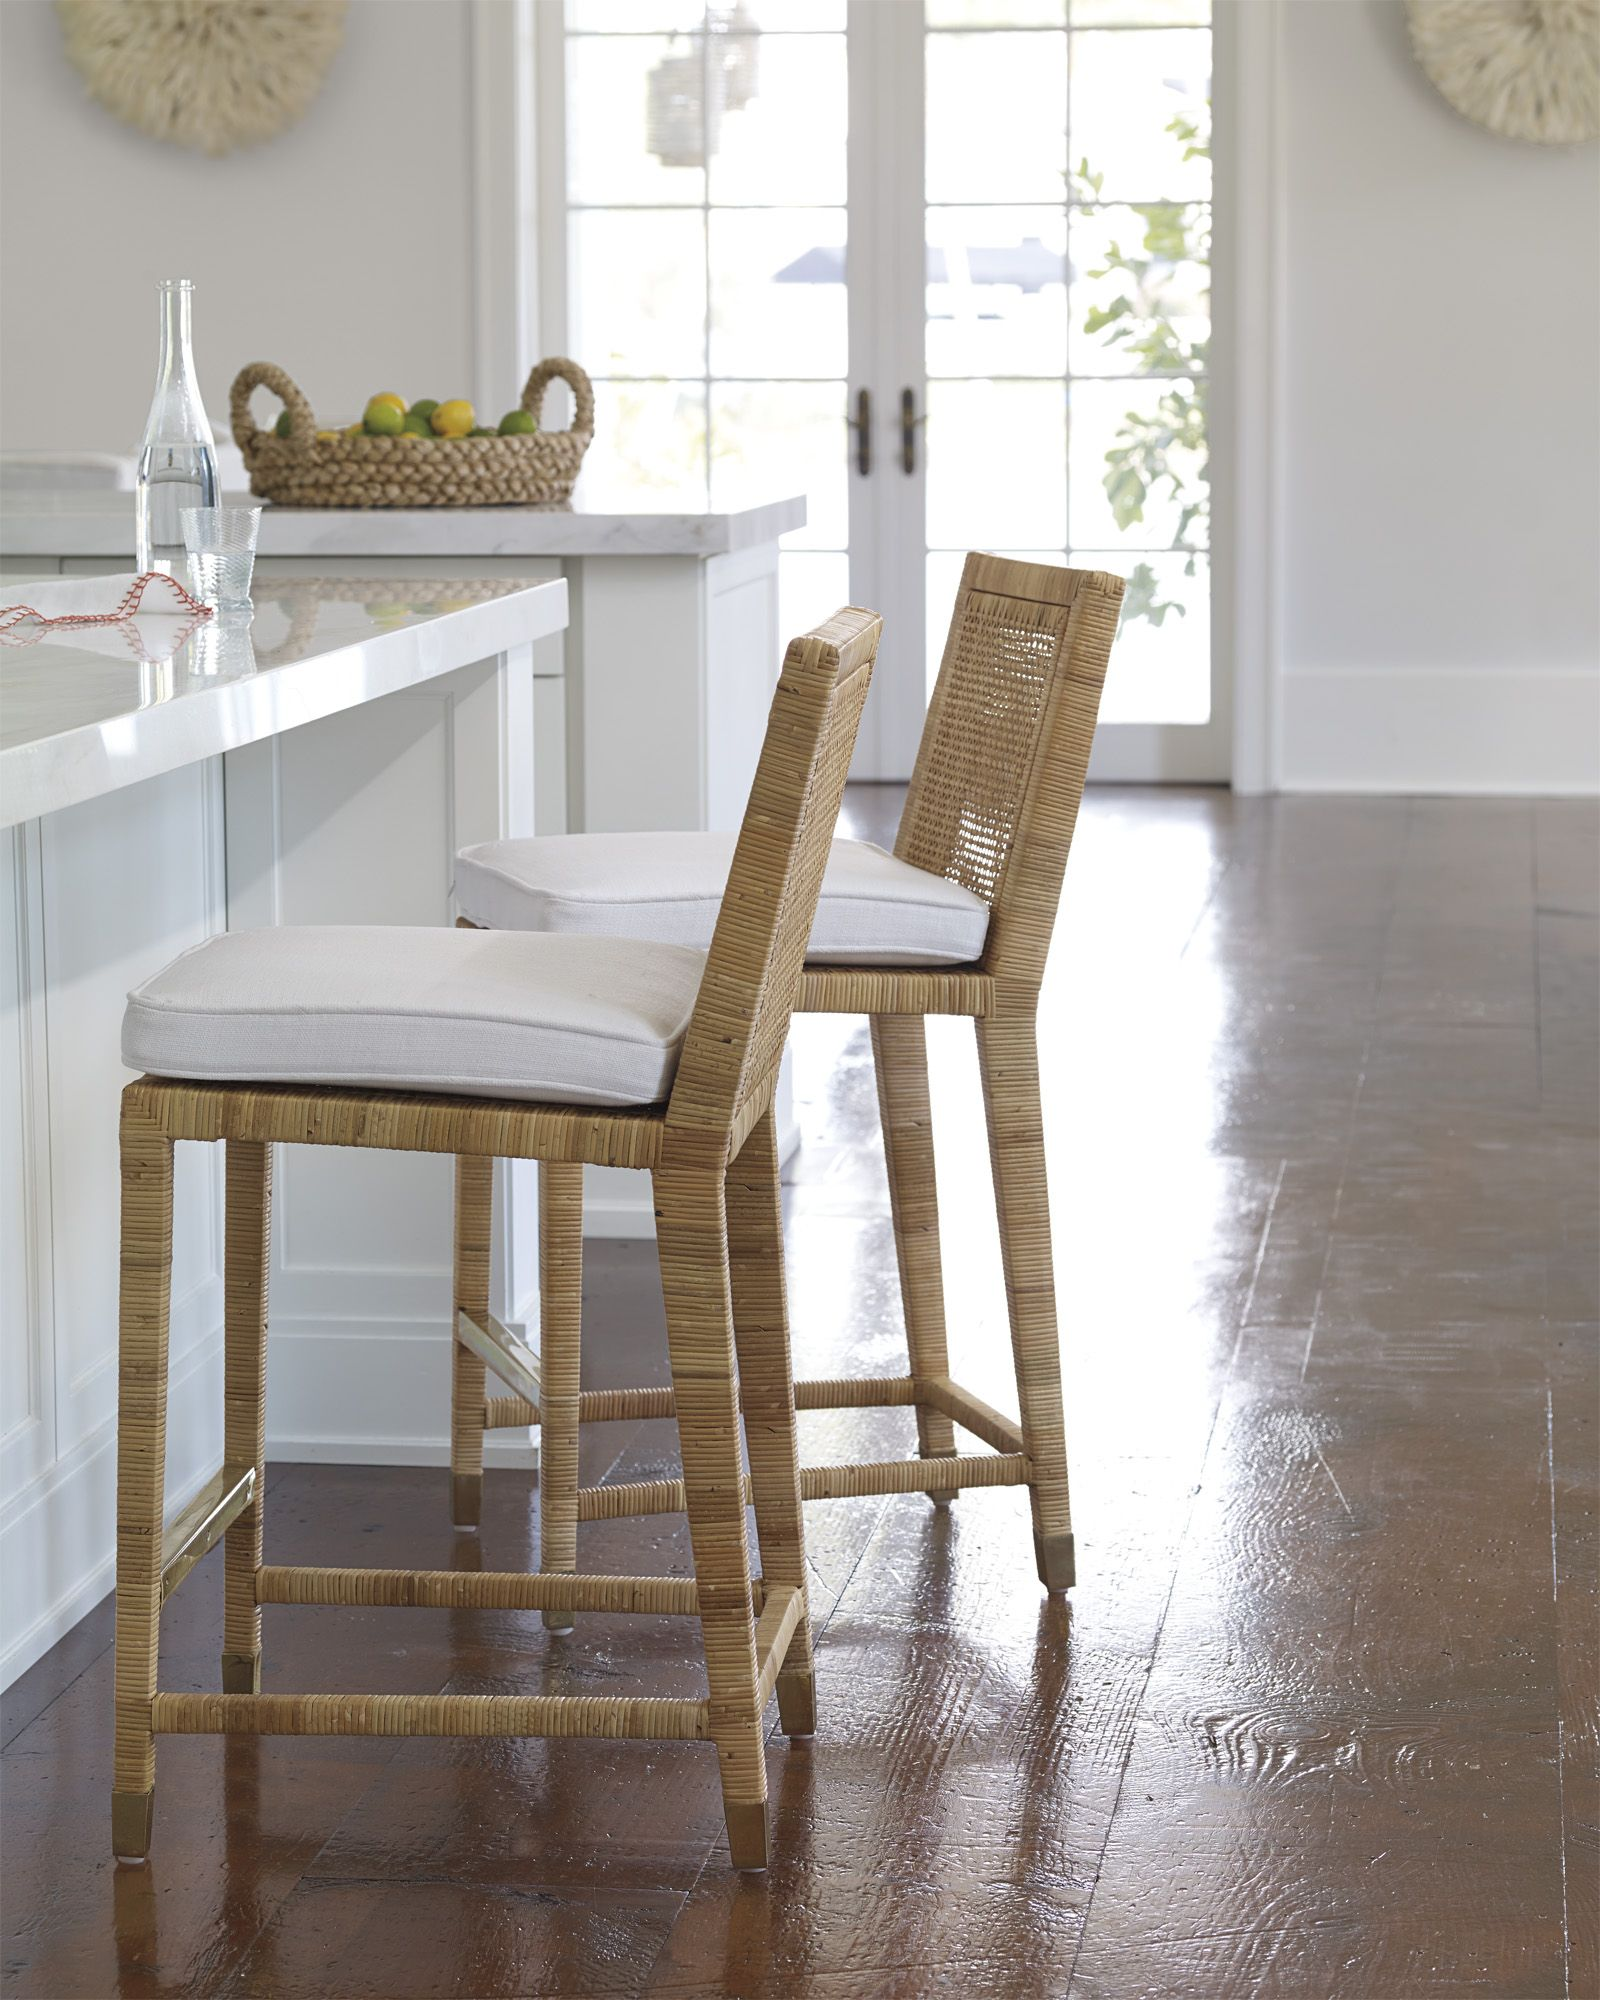 Kitchen Stools  Balboa Counter Stool with Cushion #serenaandlily